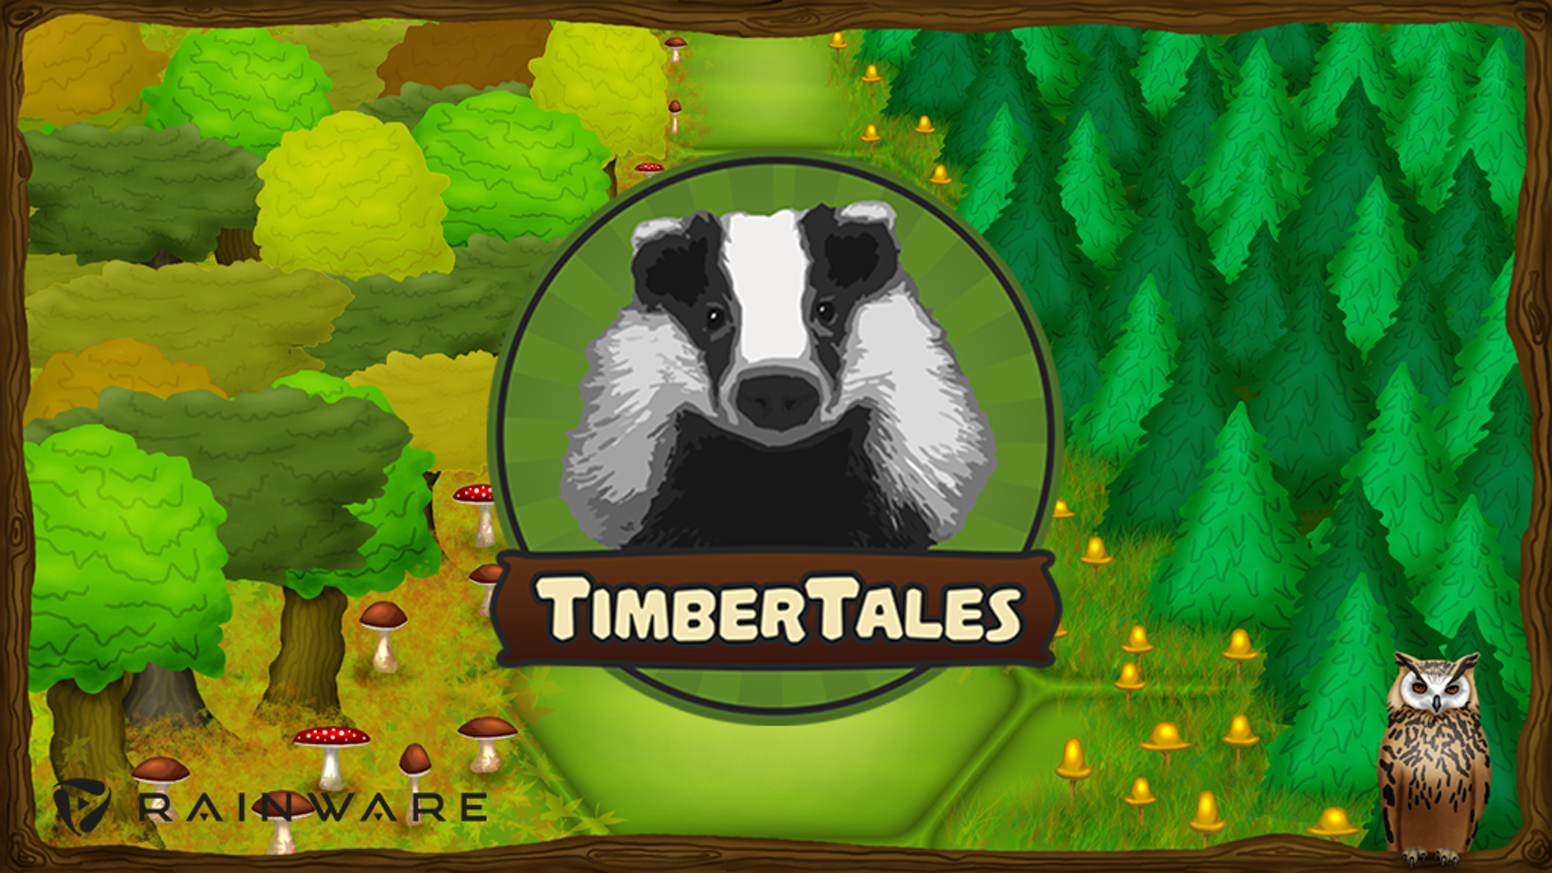 Timbertales is a turn based strategy game on hex tiles in a fantasy genre and will be available for iOS, Android and Desktop